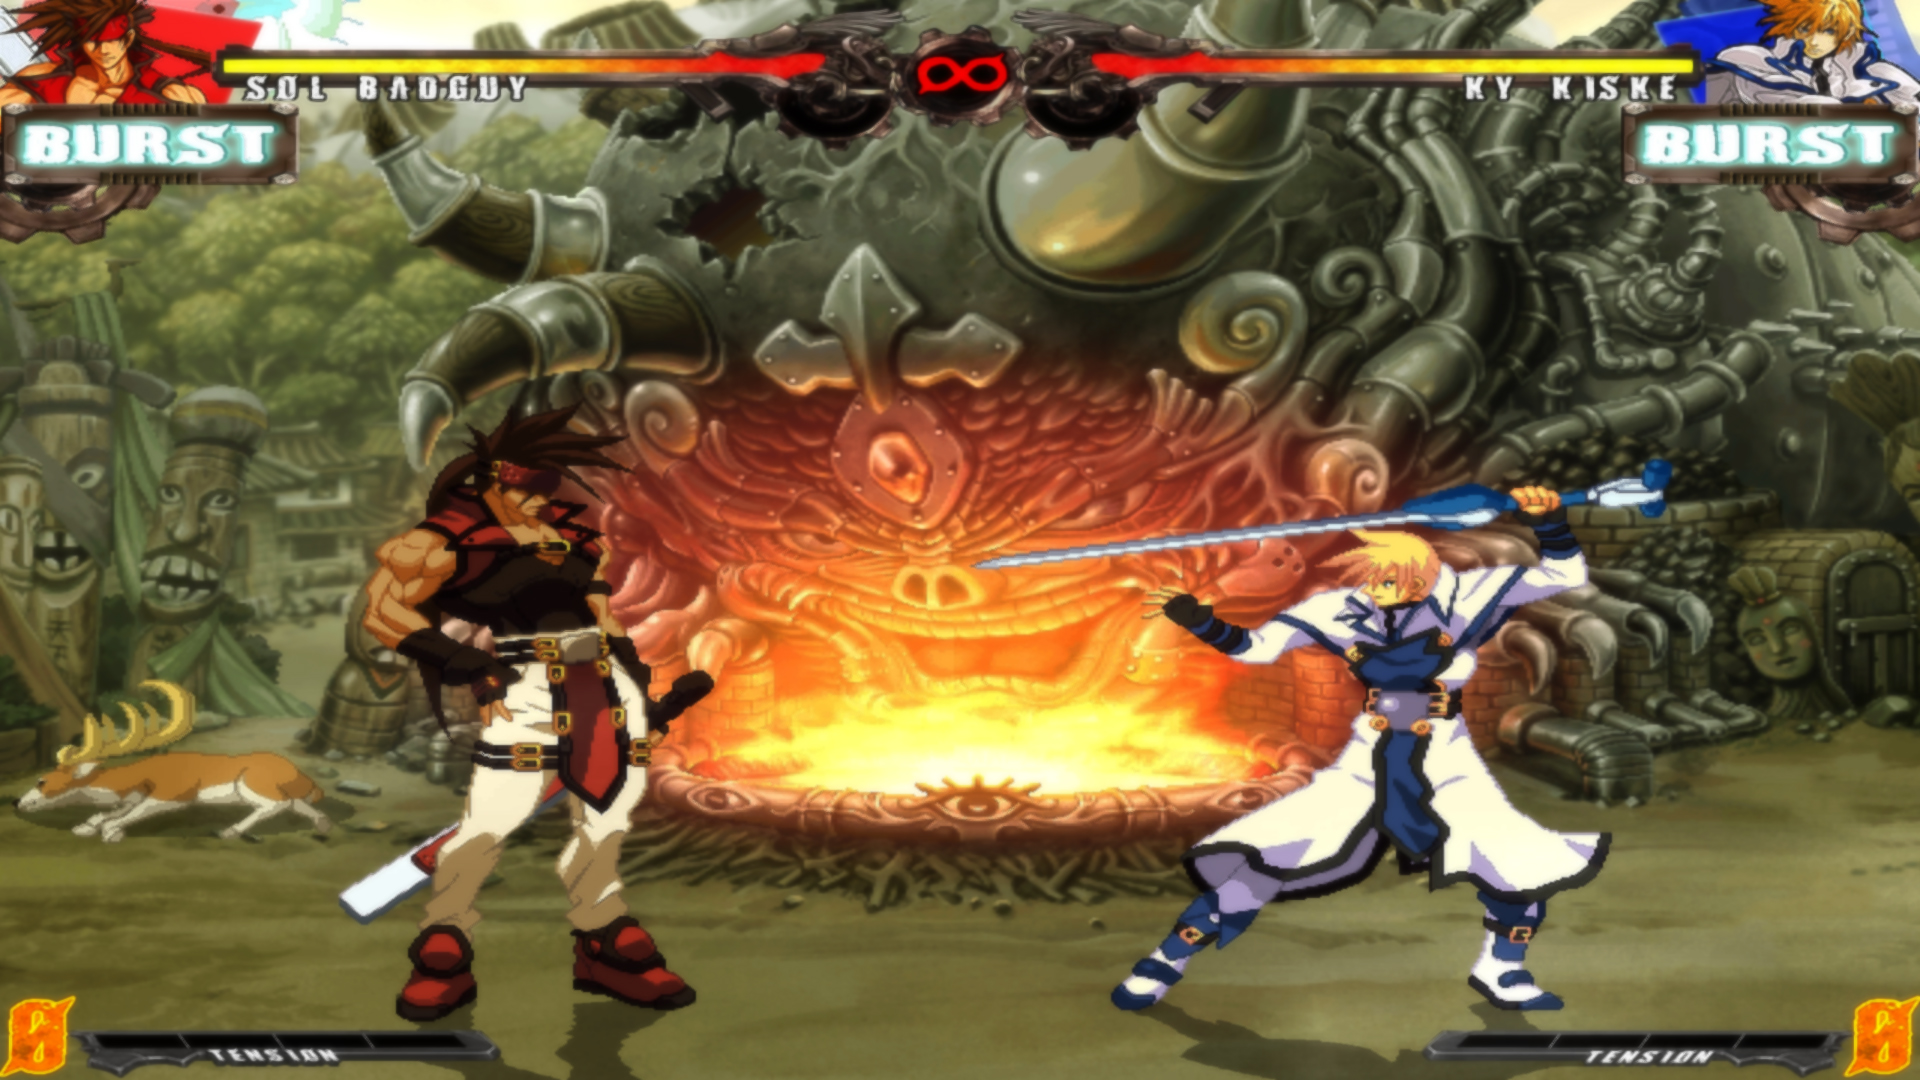 Guilty Gear XX Bloodshed Type OD+ By VGames Updated (21.08.18) Mugen_2018-08-18_16-24-34